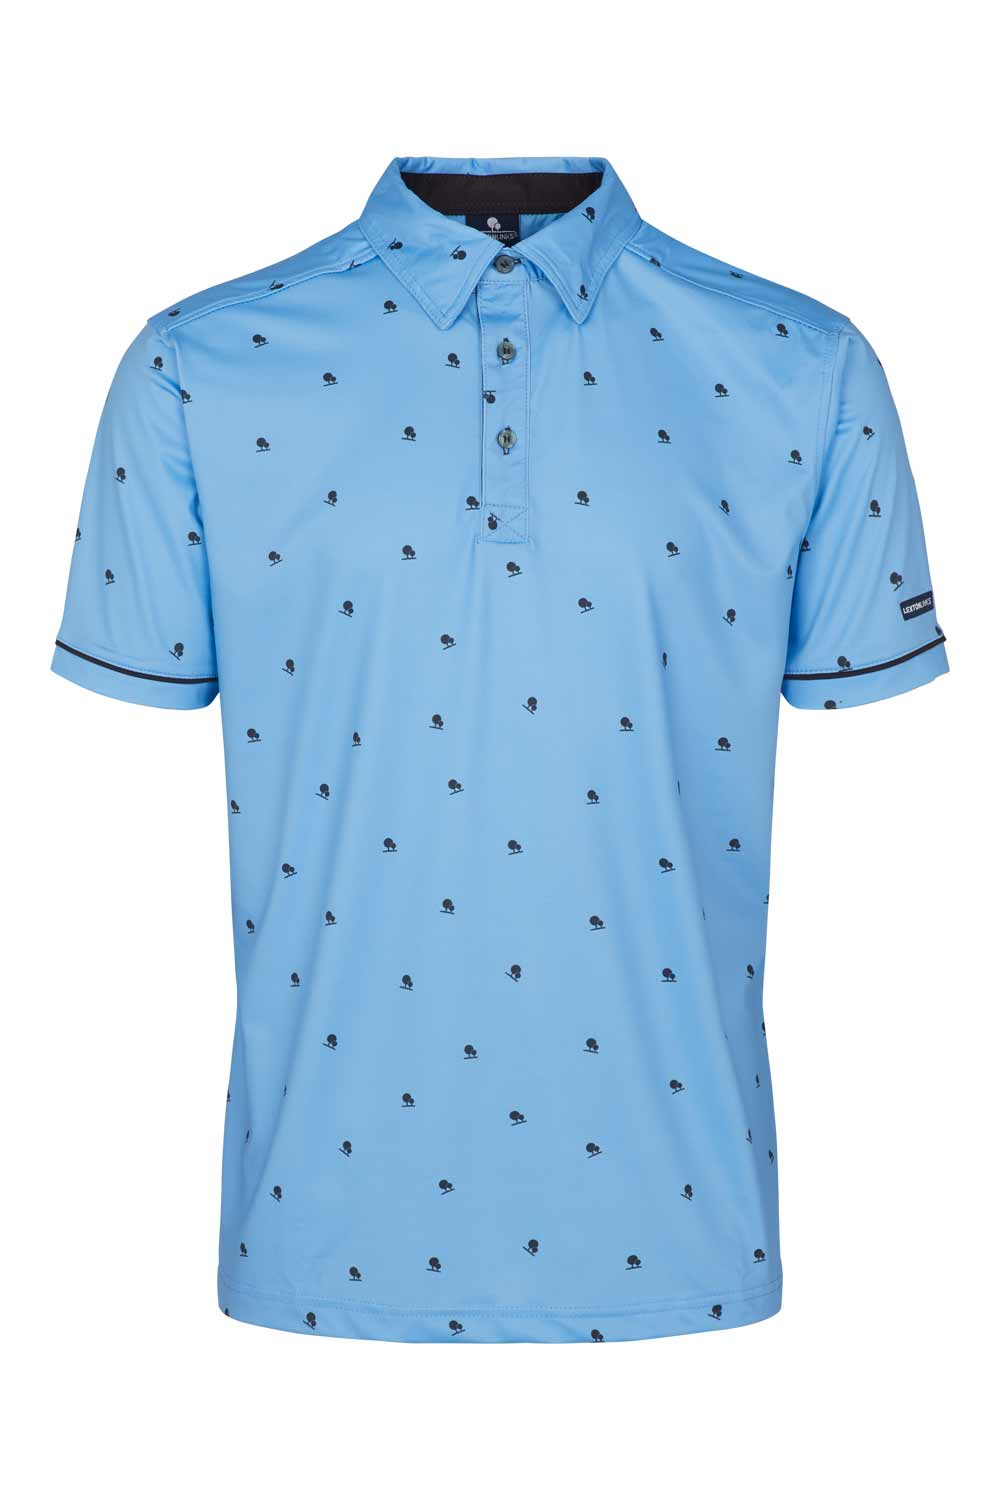 Carnaby Polo - €69,-